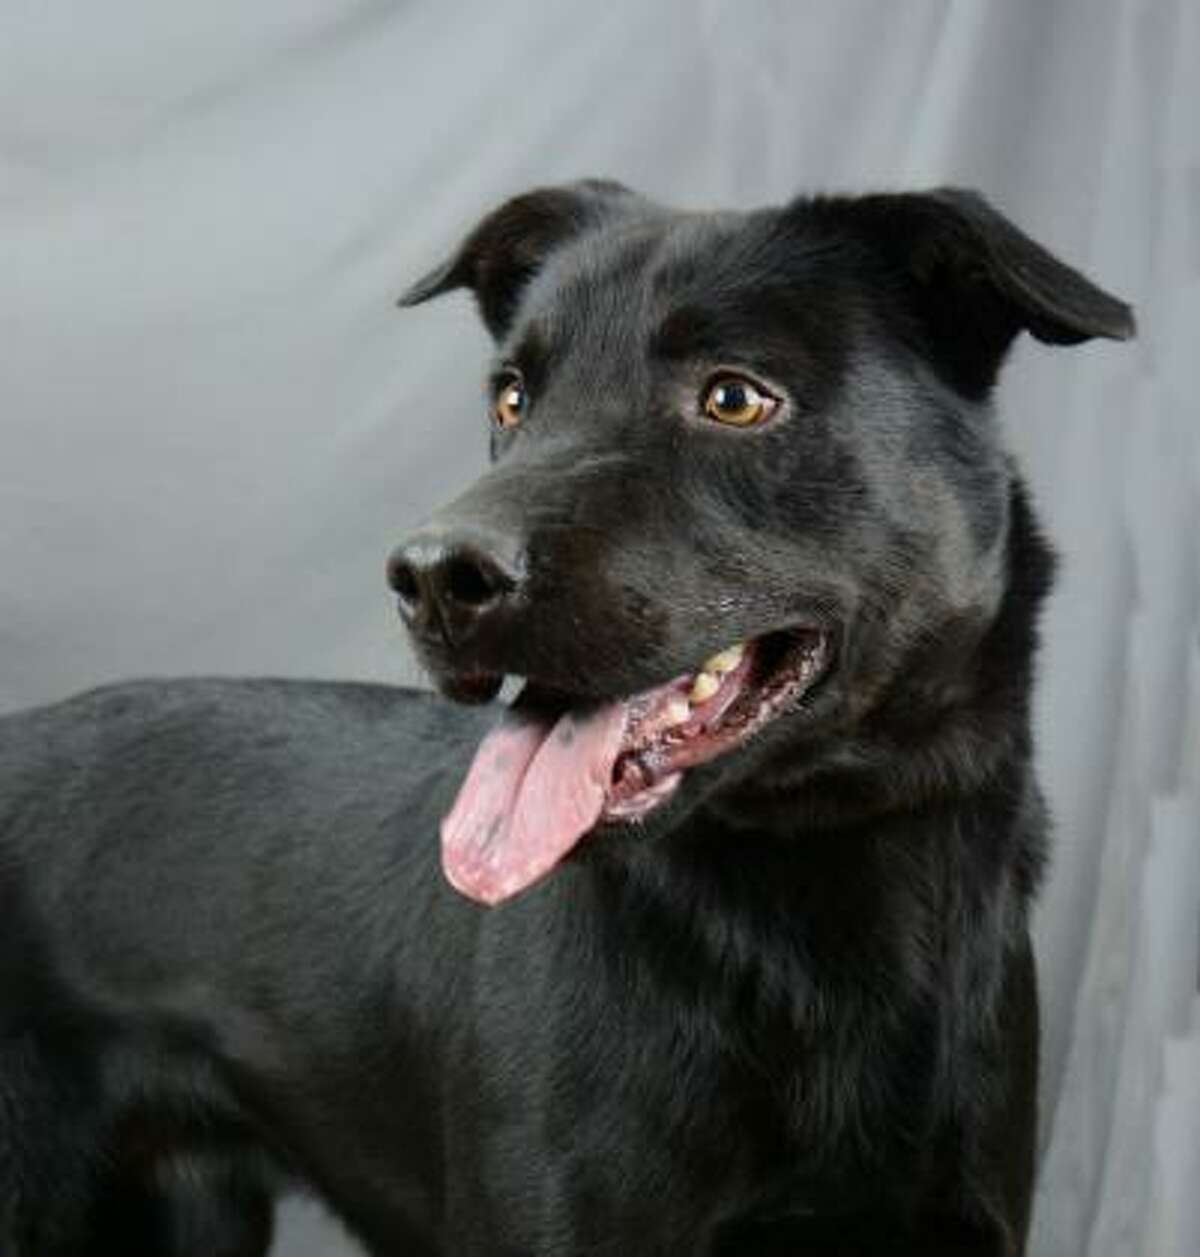 Buddy's been at HHS since May, and he knows it often takes big black dogs the longest to get adopted. This 1 1/2 year-old has spent almost a 1/3 of his life at the shelter, all he really wants is a home. Buddy is a young lab mix full of life and boundless energy. He needs an active person or family. He loves running and playing but does come when called and sits when asked (and he's even learning the agility equipment). This pet is now available for adoption from the Houston Humane Society.